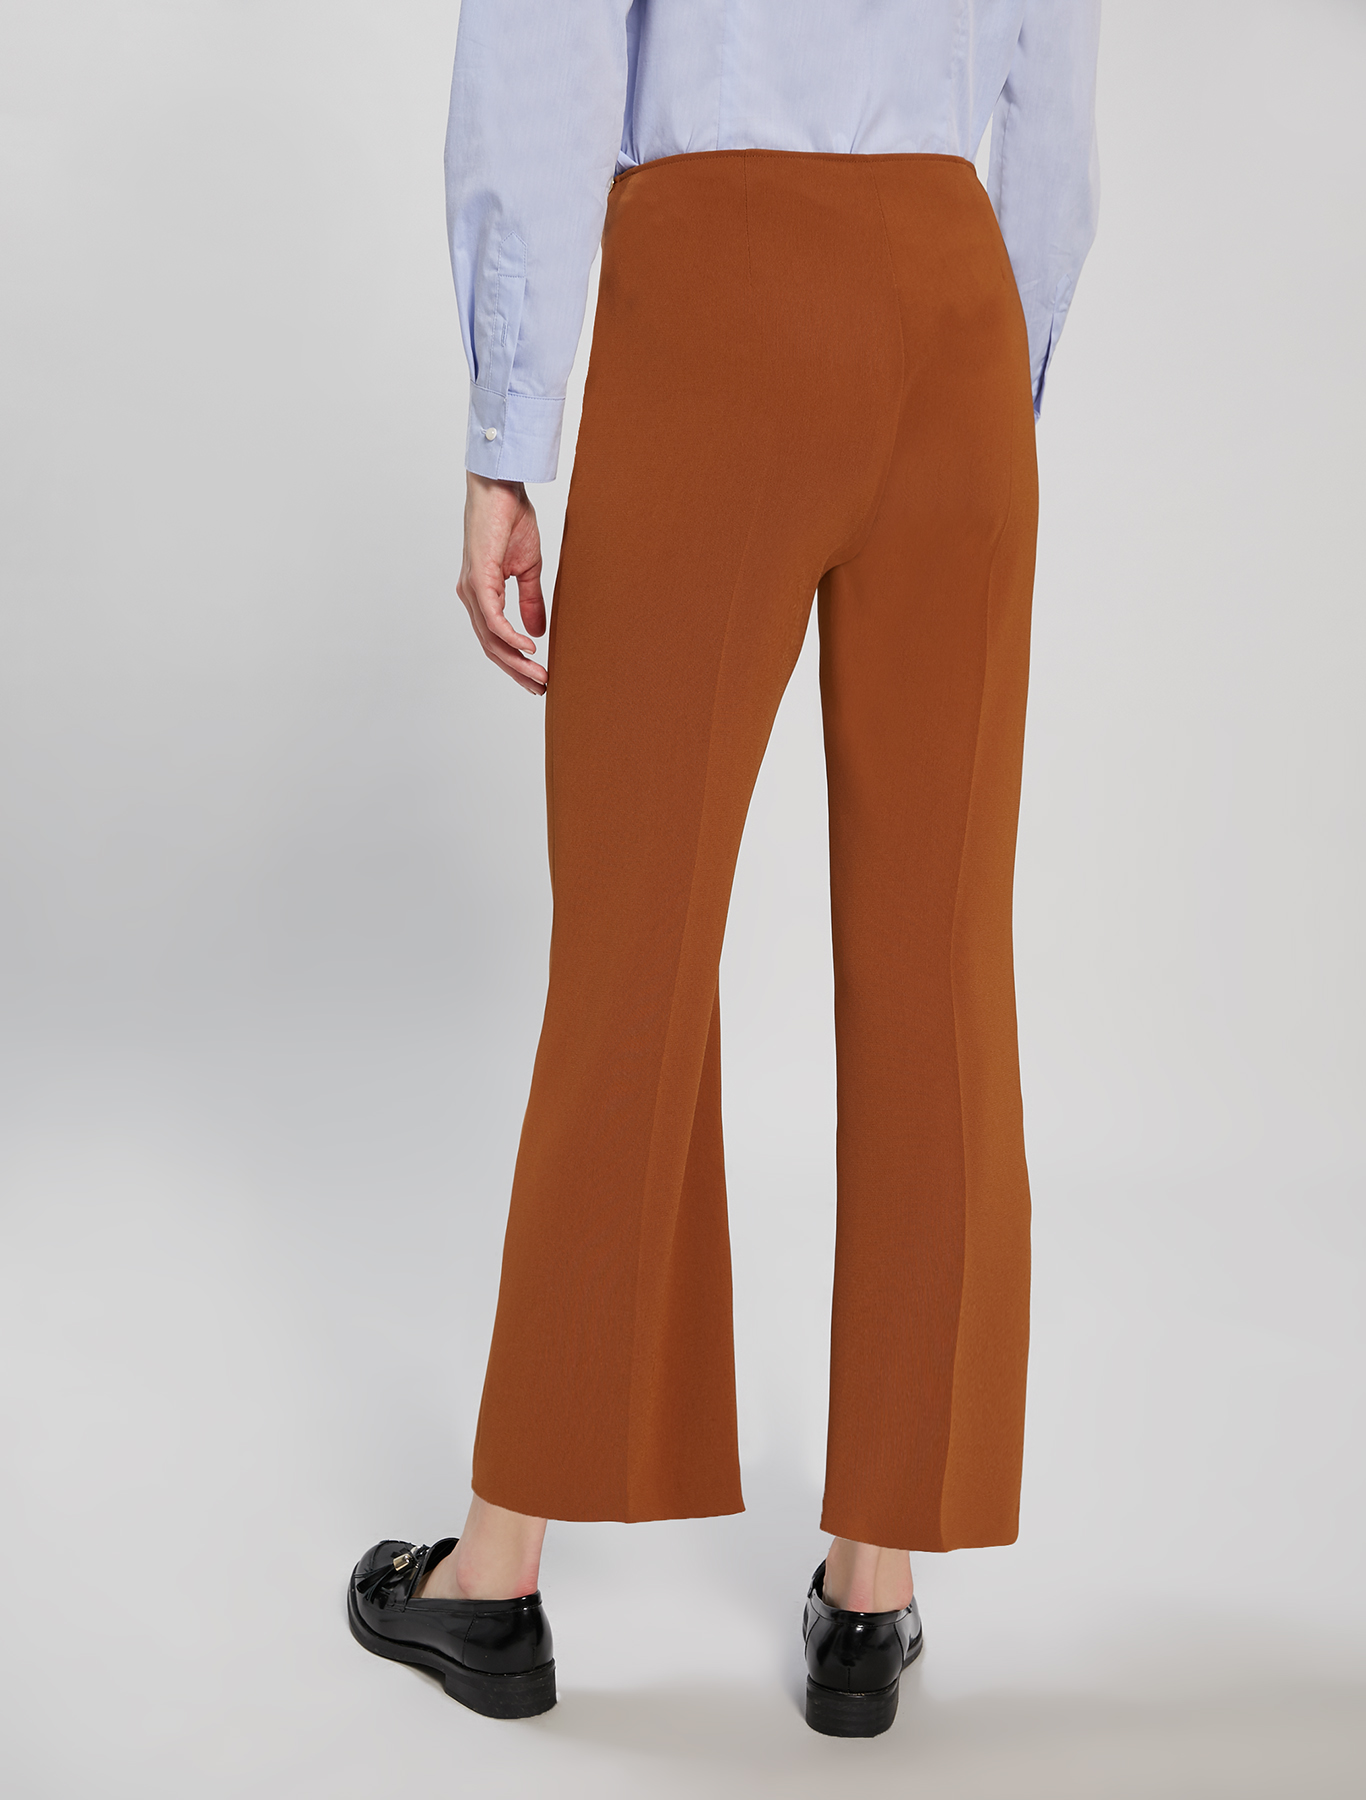 Flowing kick-flare trousers - bronze - pennyblack